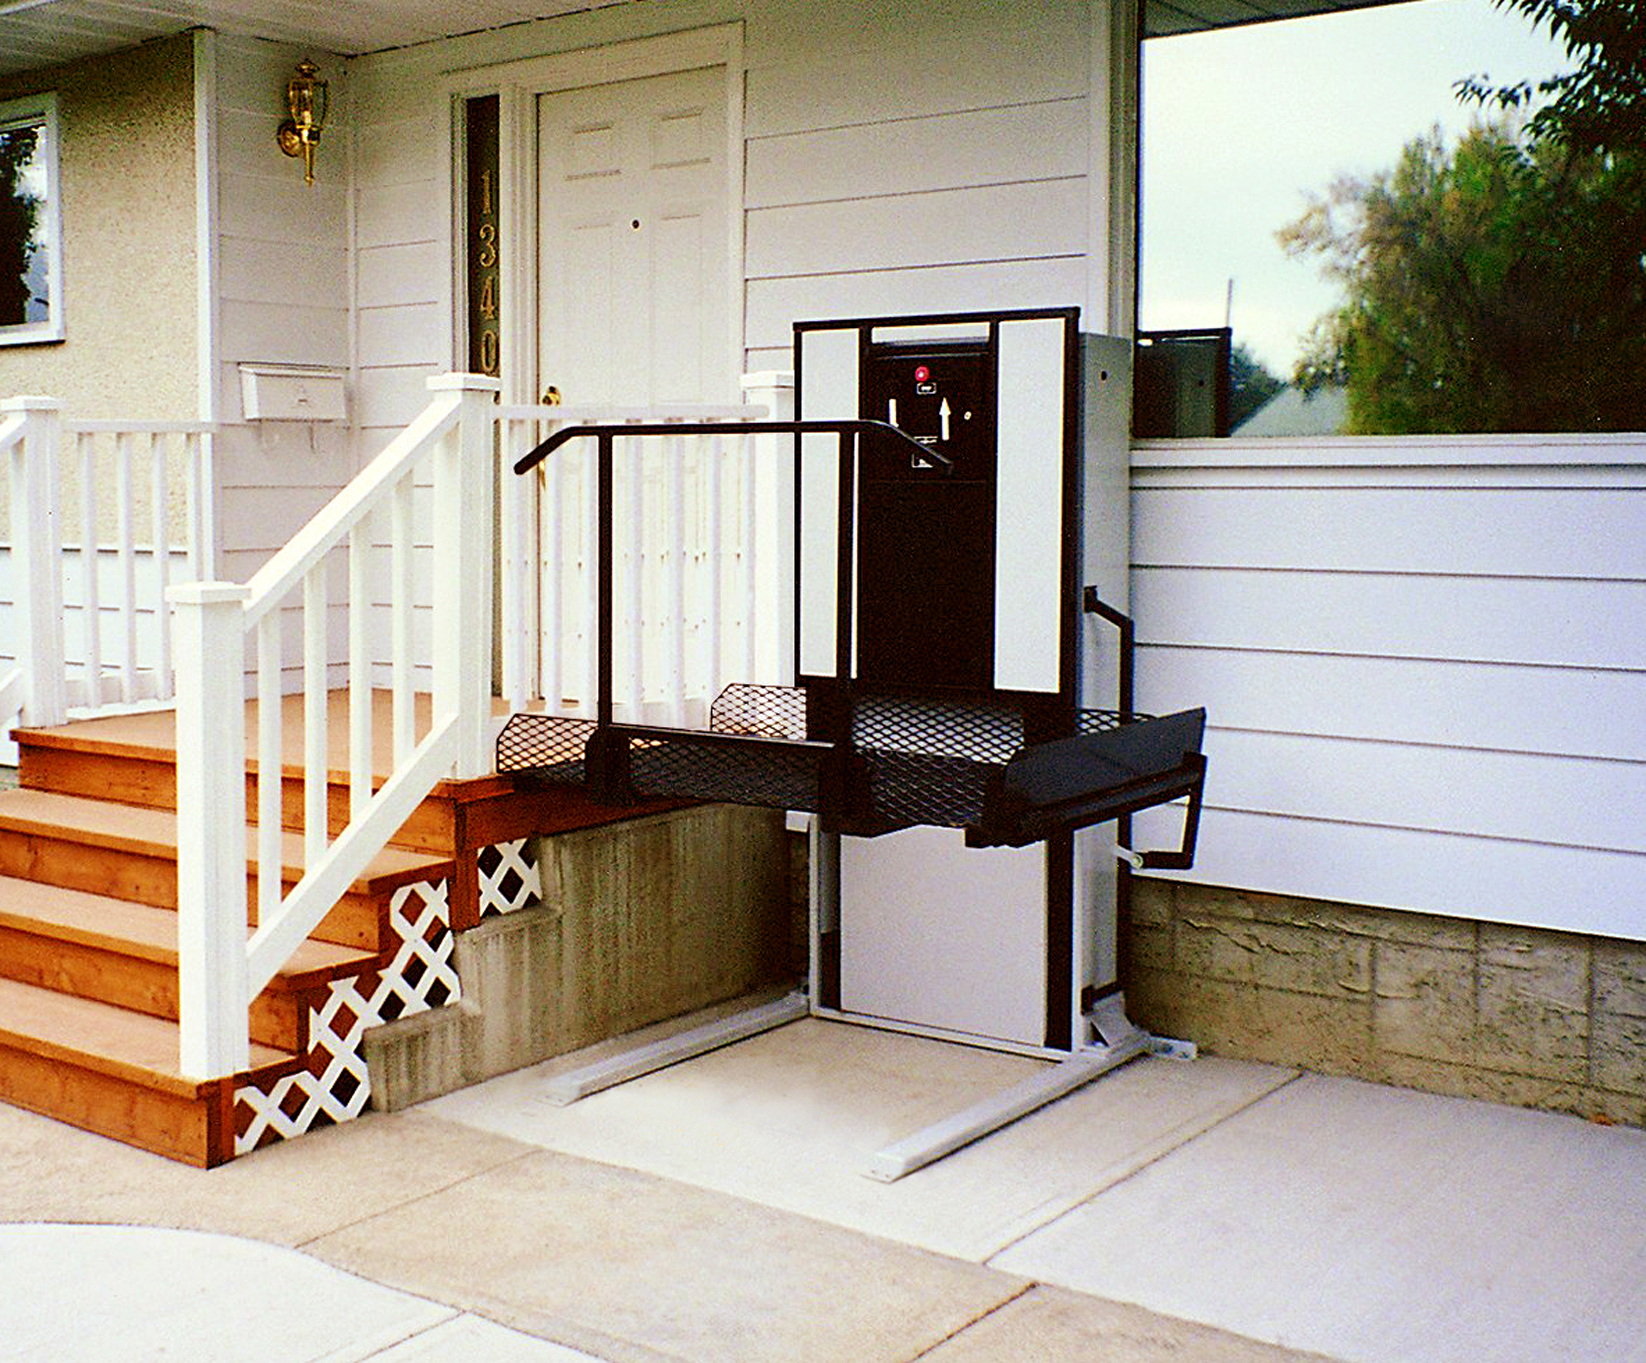 Inspiring Home Design Ideas with Mobile Home Porches: Mobile Home Porches | Mobile Home Porch Designs | Front Porches For Mobile Homes